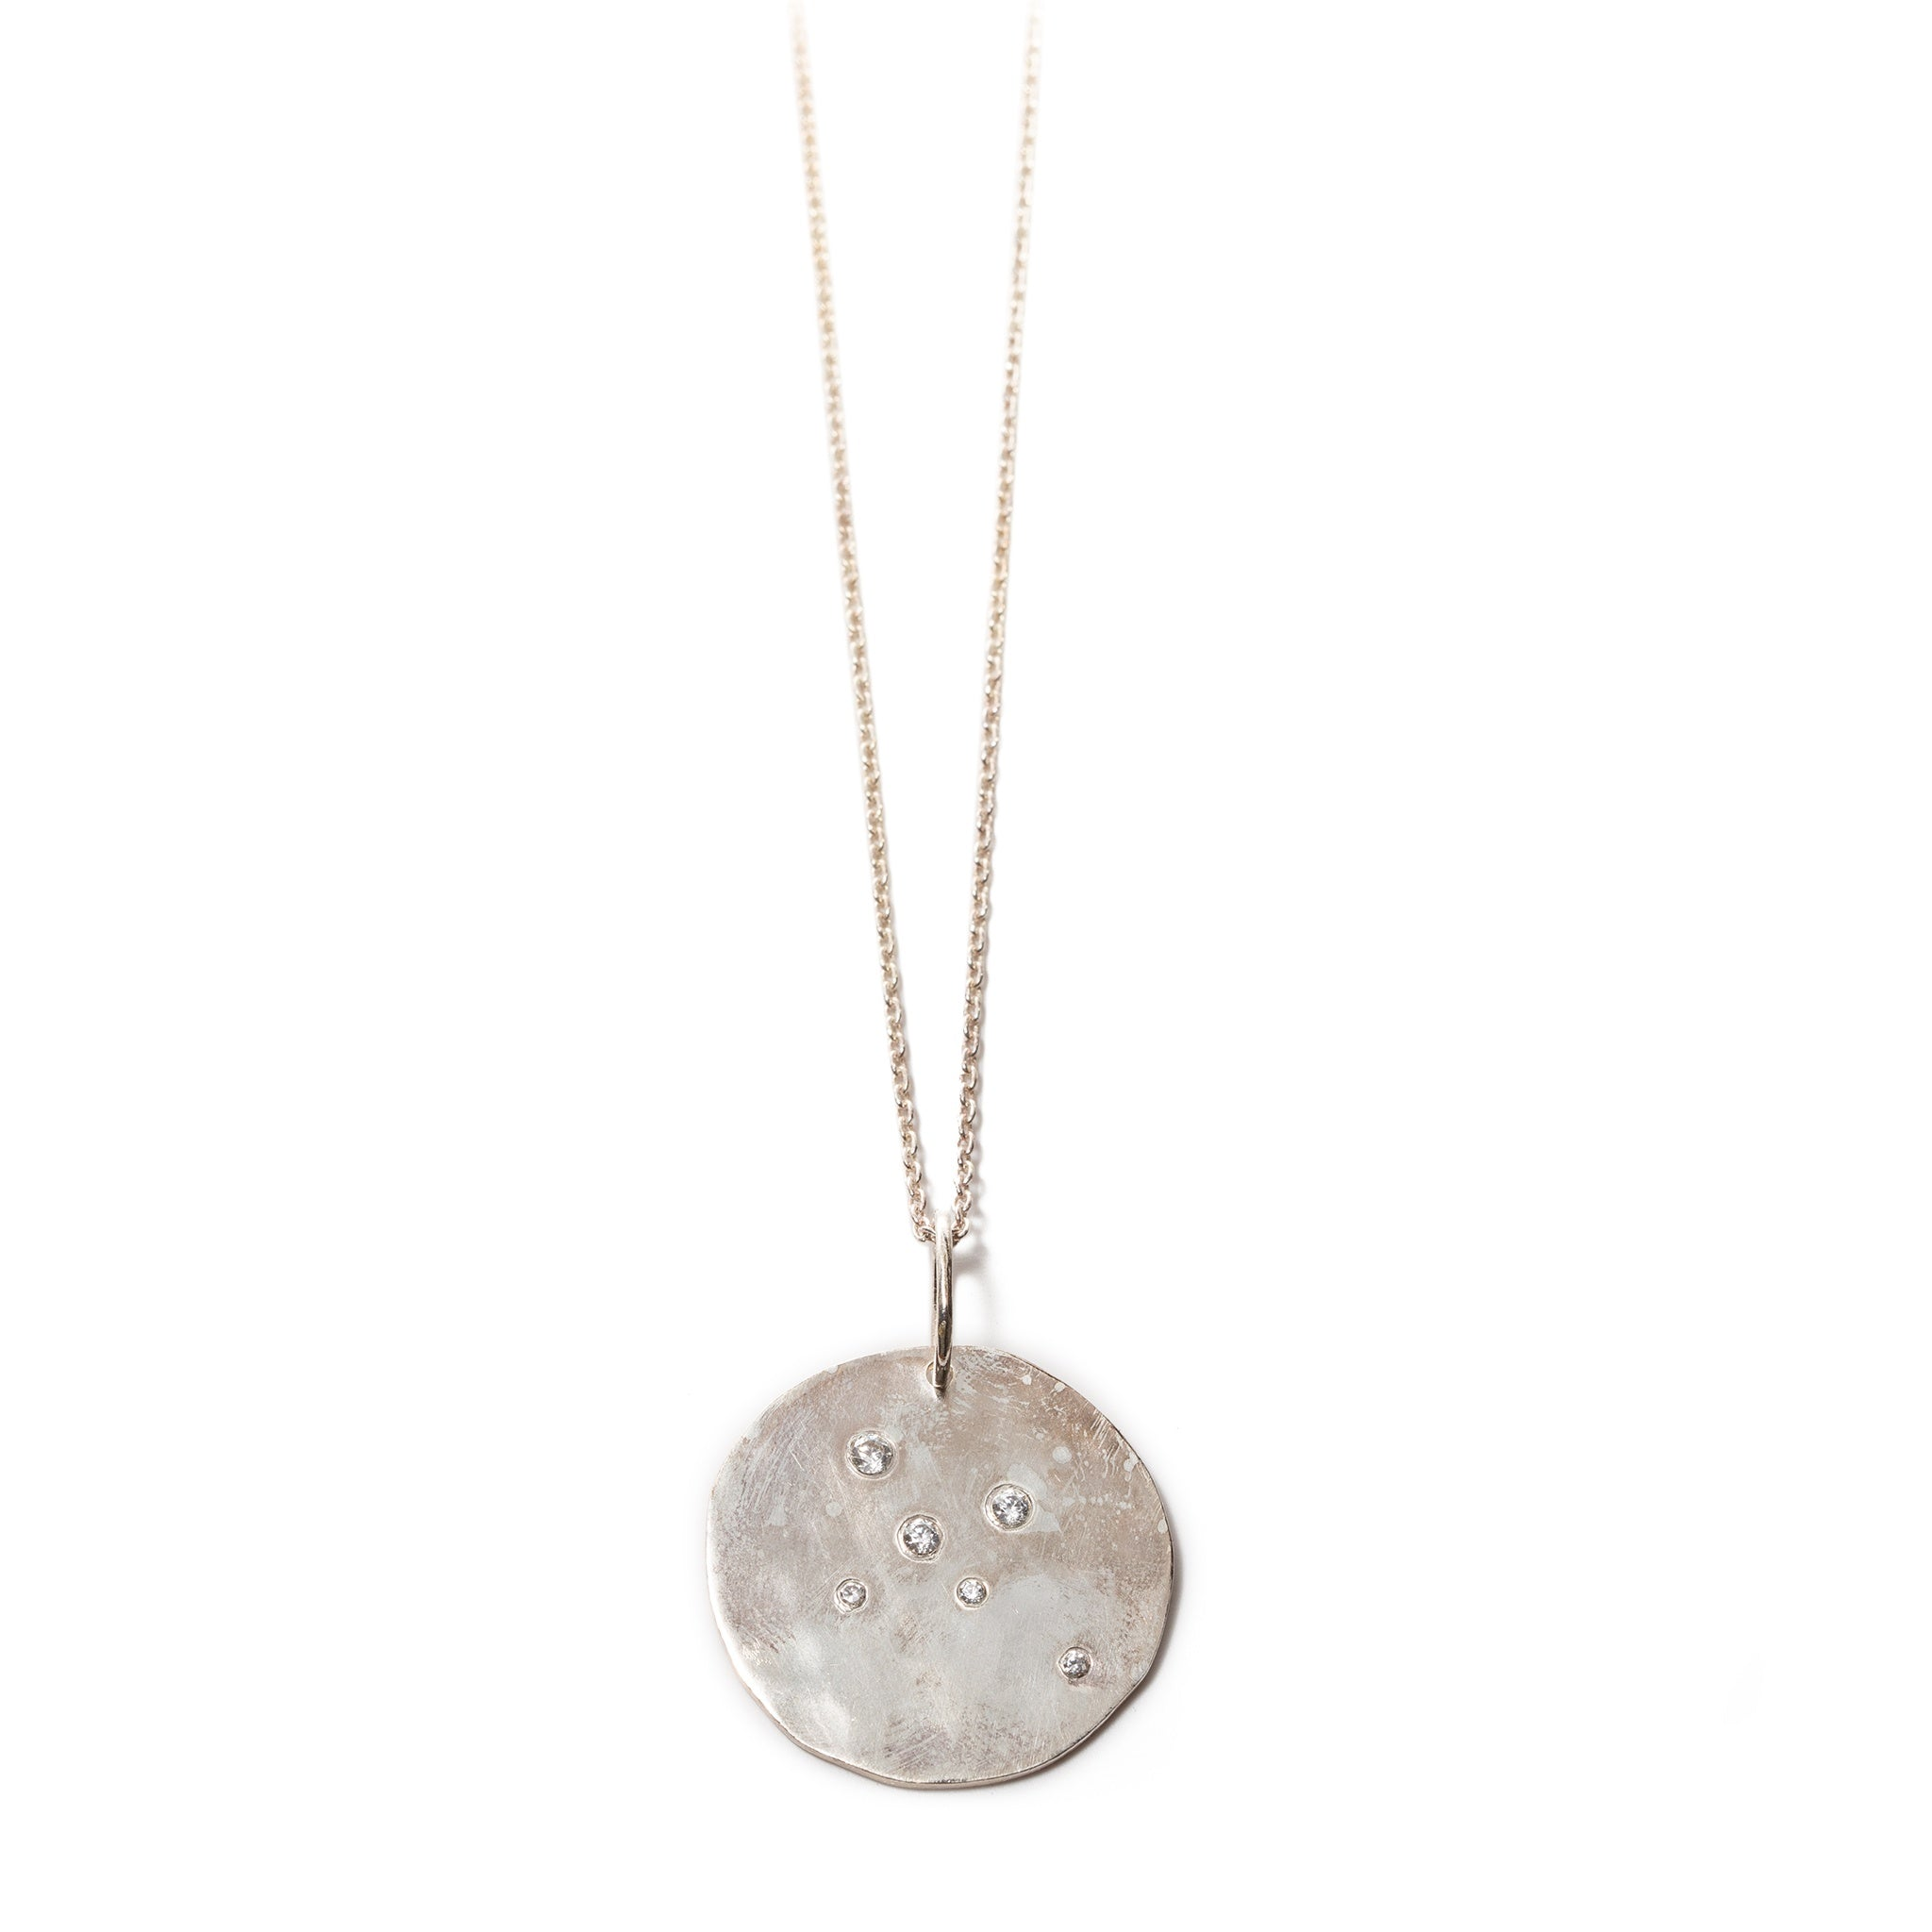 Large Silver Constellation Pendant Necklace